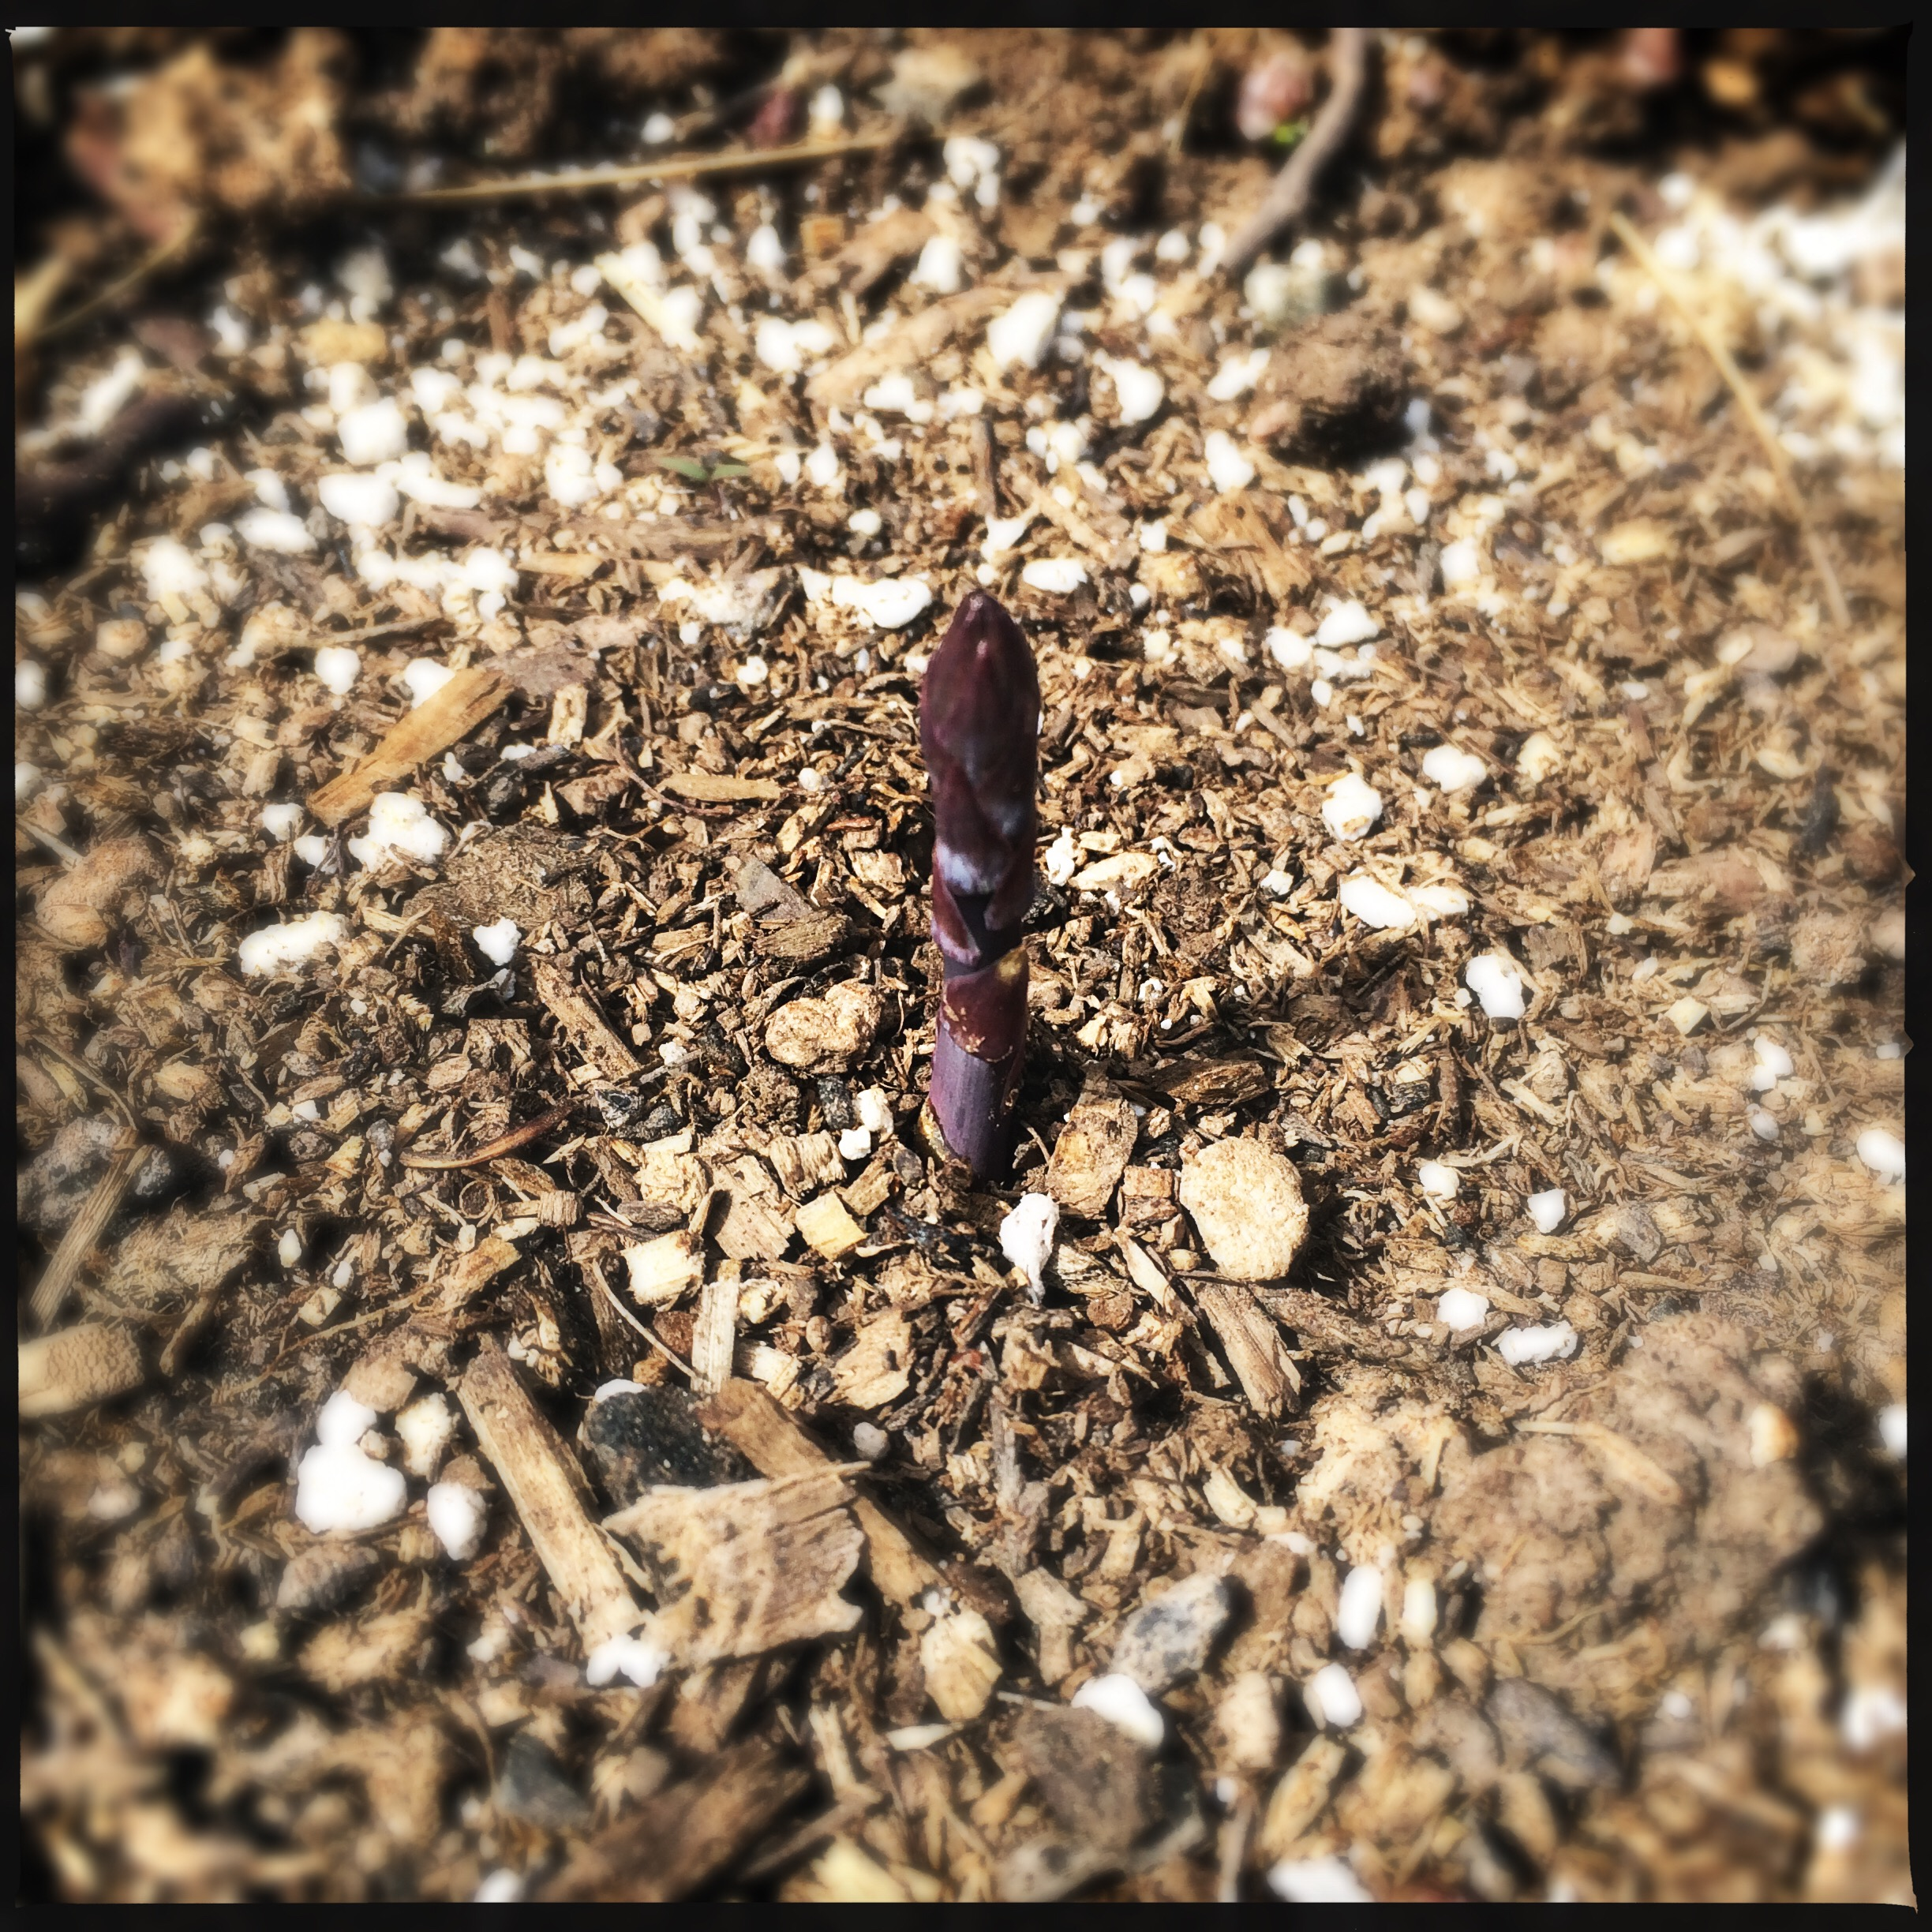 The most beautiful thing I saw this week was the first purple asparagus spear poking up from the bed where I planted the crowns a couple of weeks ago.